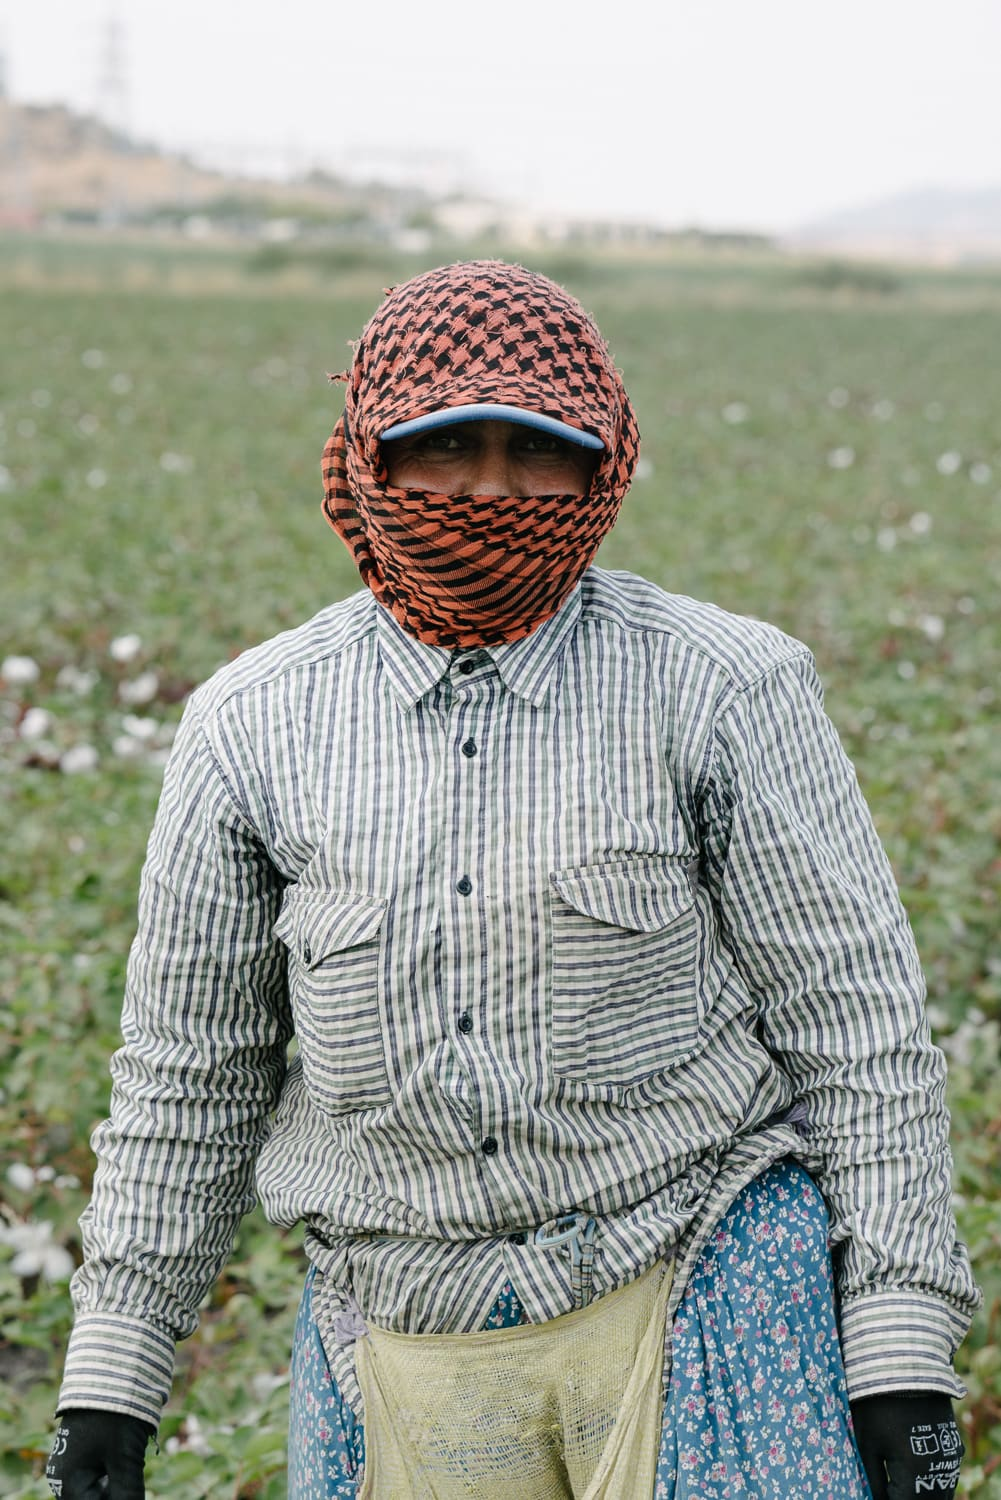 Organic cotton picker in a field in Turkey